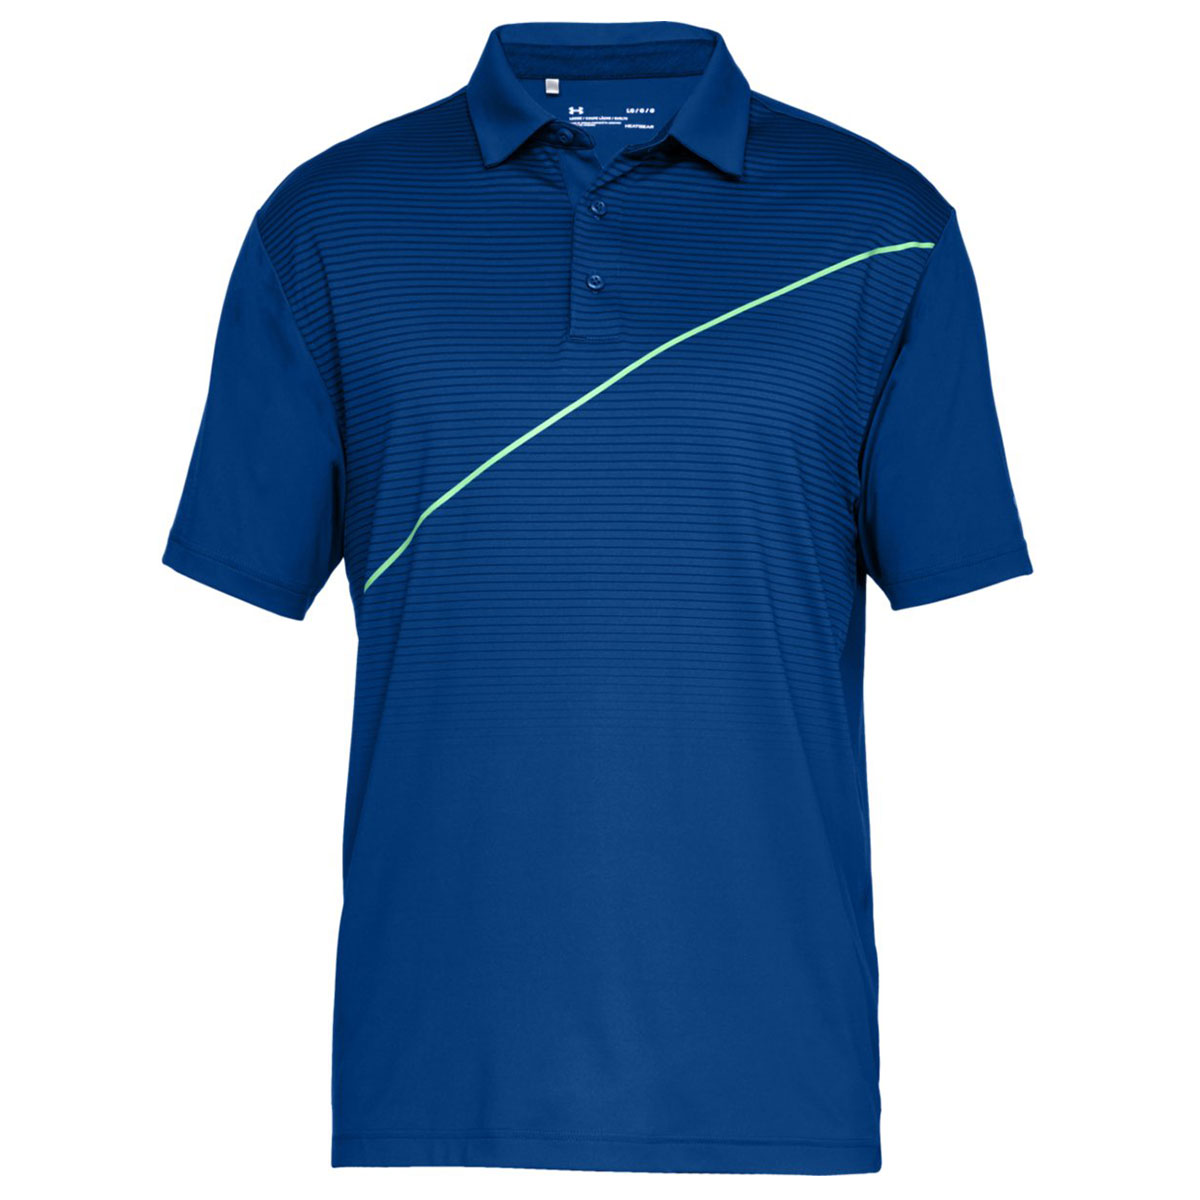 Under-Armour-Mens-UA-Playoff-Performance-Golf-Polo-Shirt-33-OFF-RRP thumbnail 86